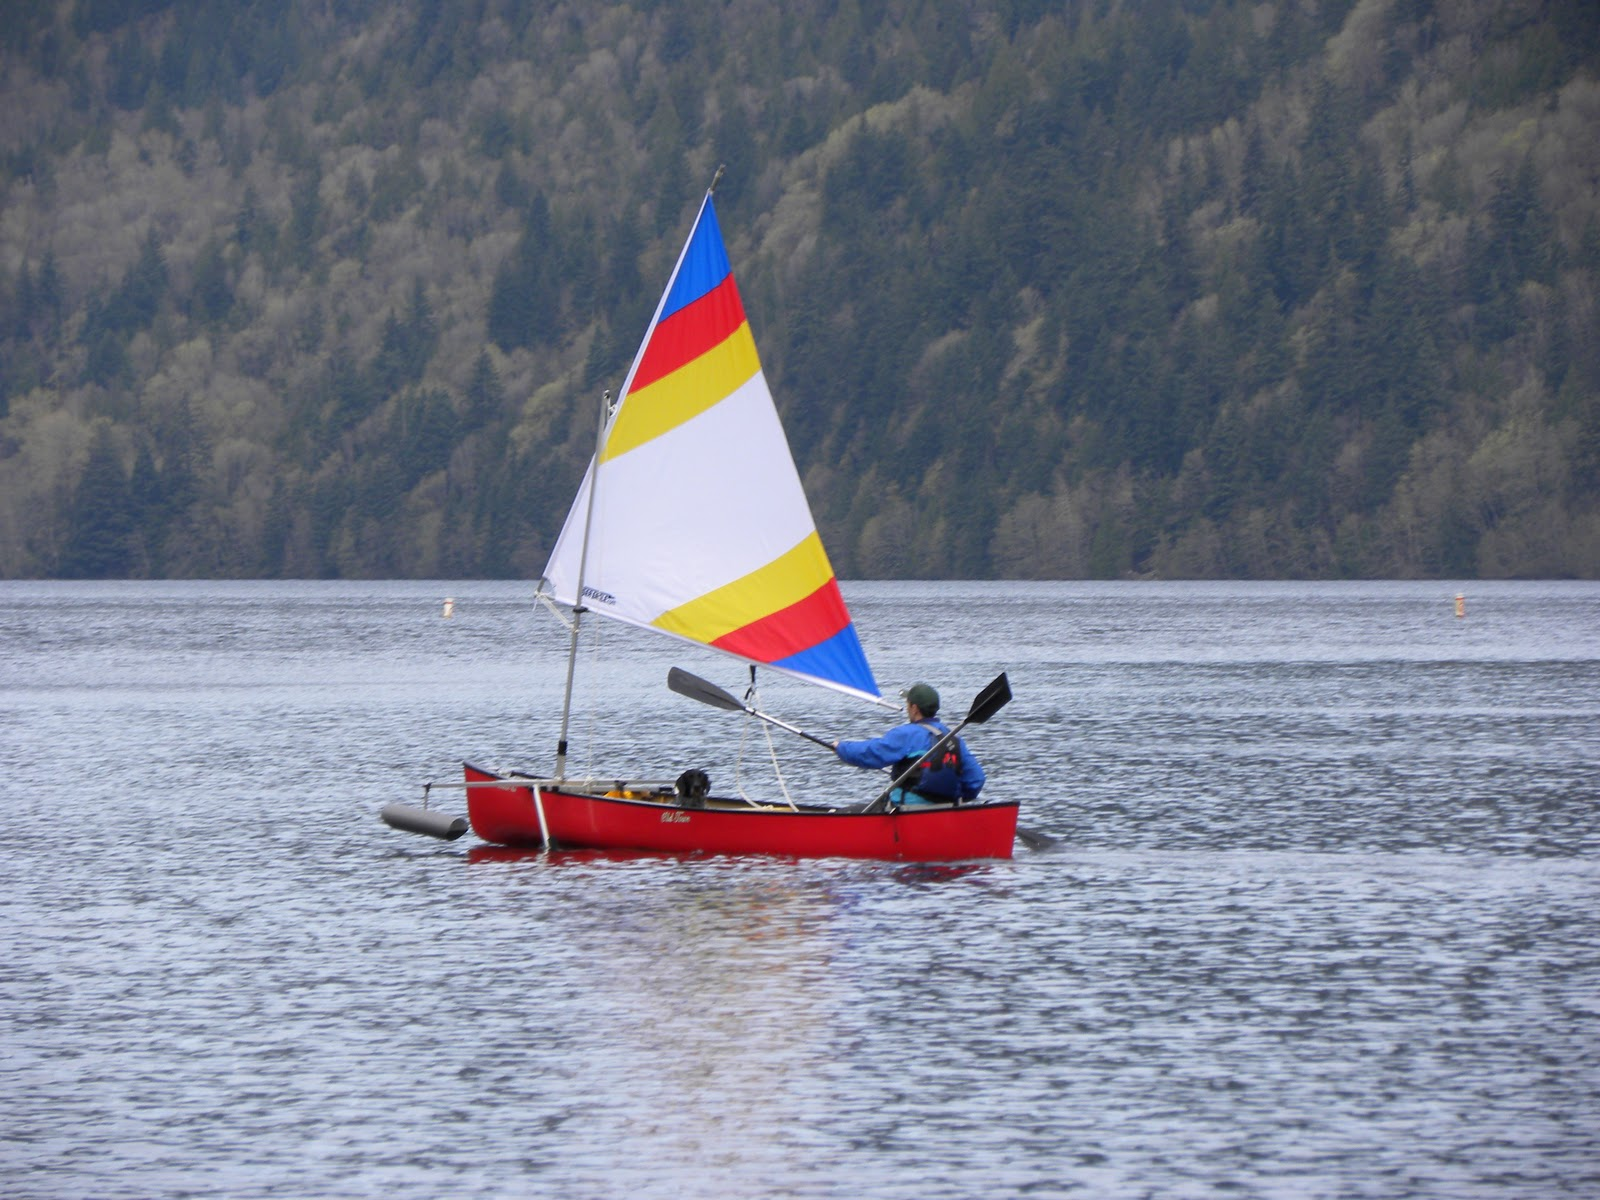 Log Canoe Sailing http://sweathogsoutdoorblog.blogspot.com/2011/04/thoughts-on-canoe-sailing.html